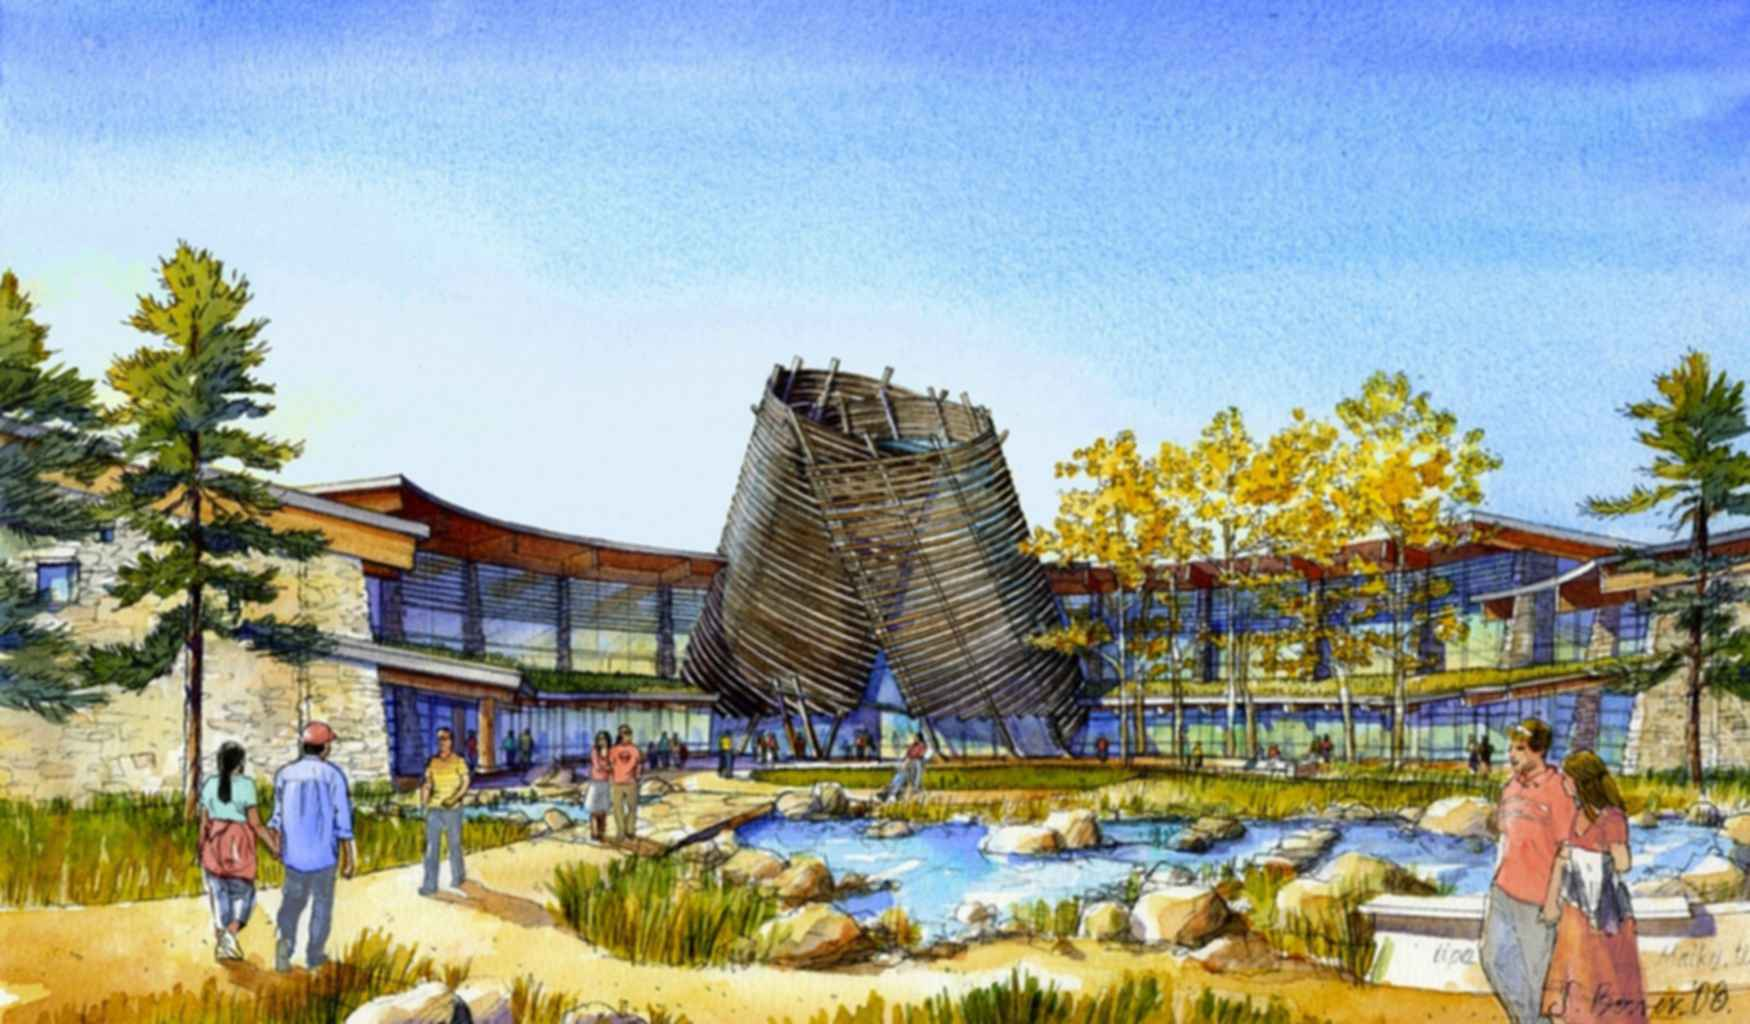 Southern Ute Cultural Center - Concept Drawing